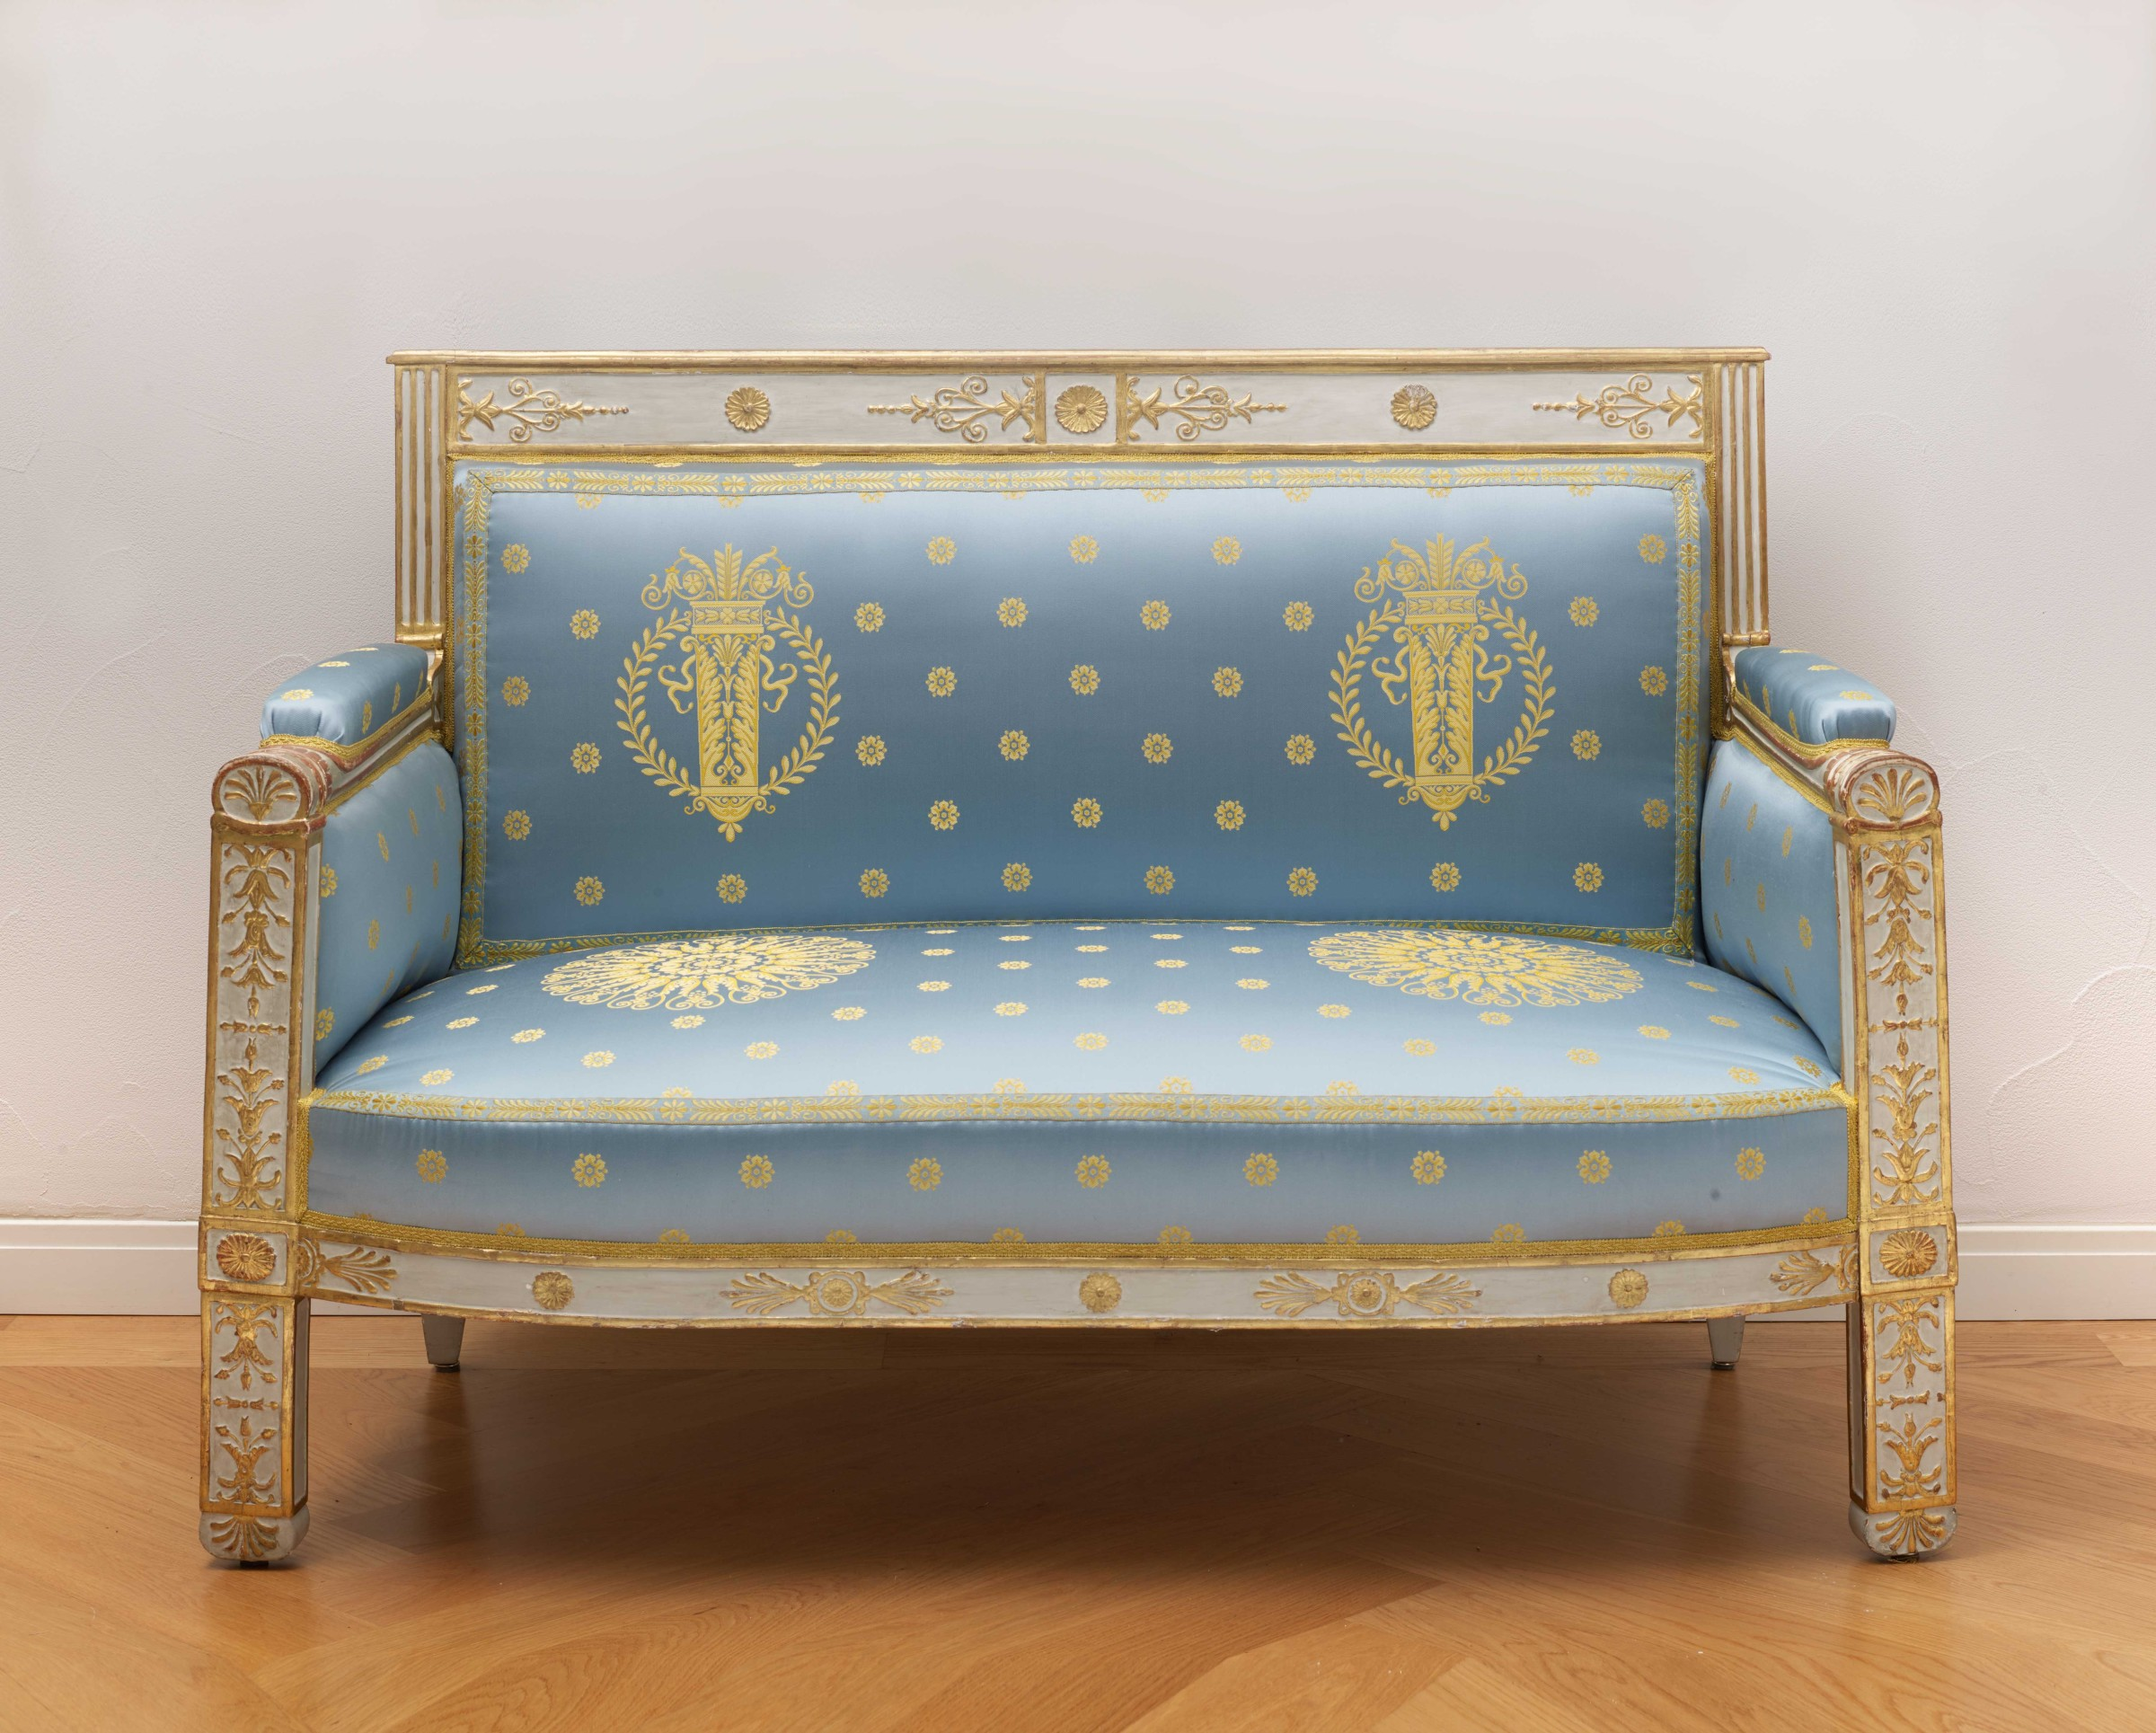 Pierre Gaston Brion Attributed To A Set Of Empire Furniture